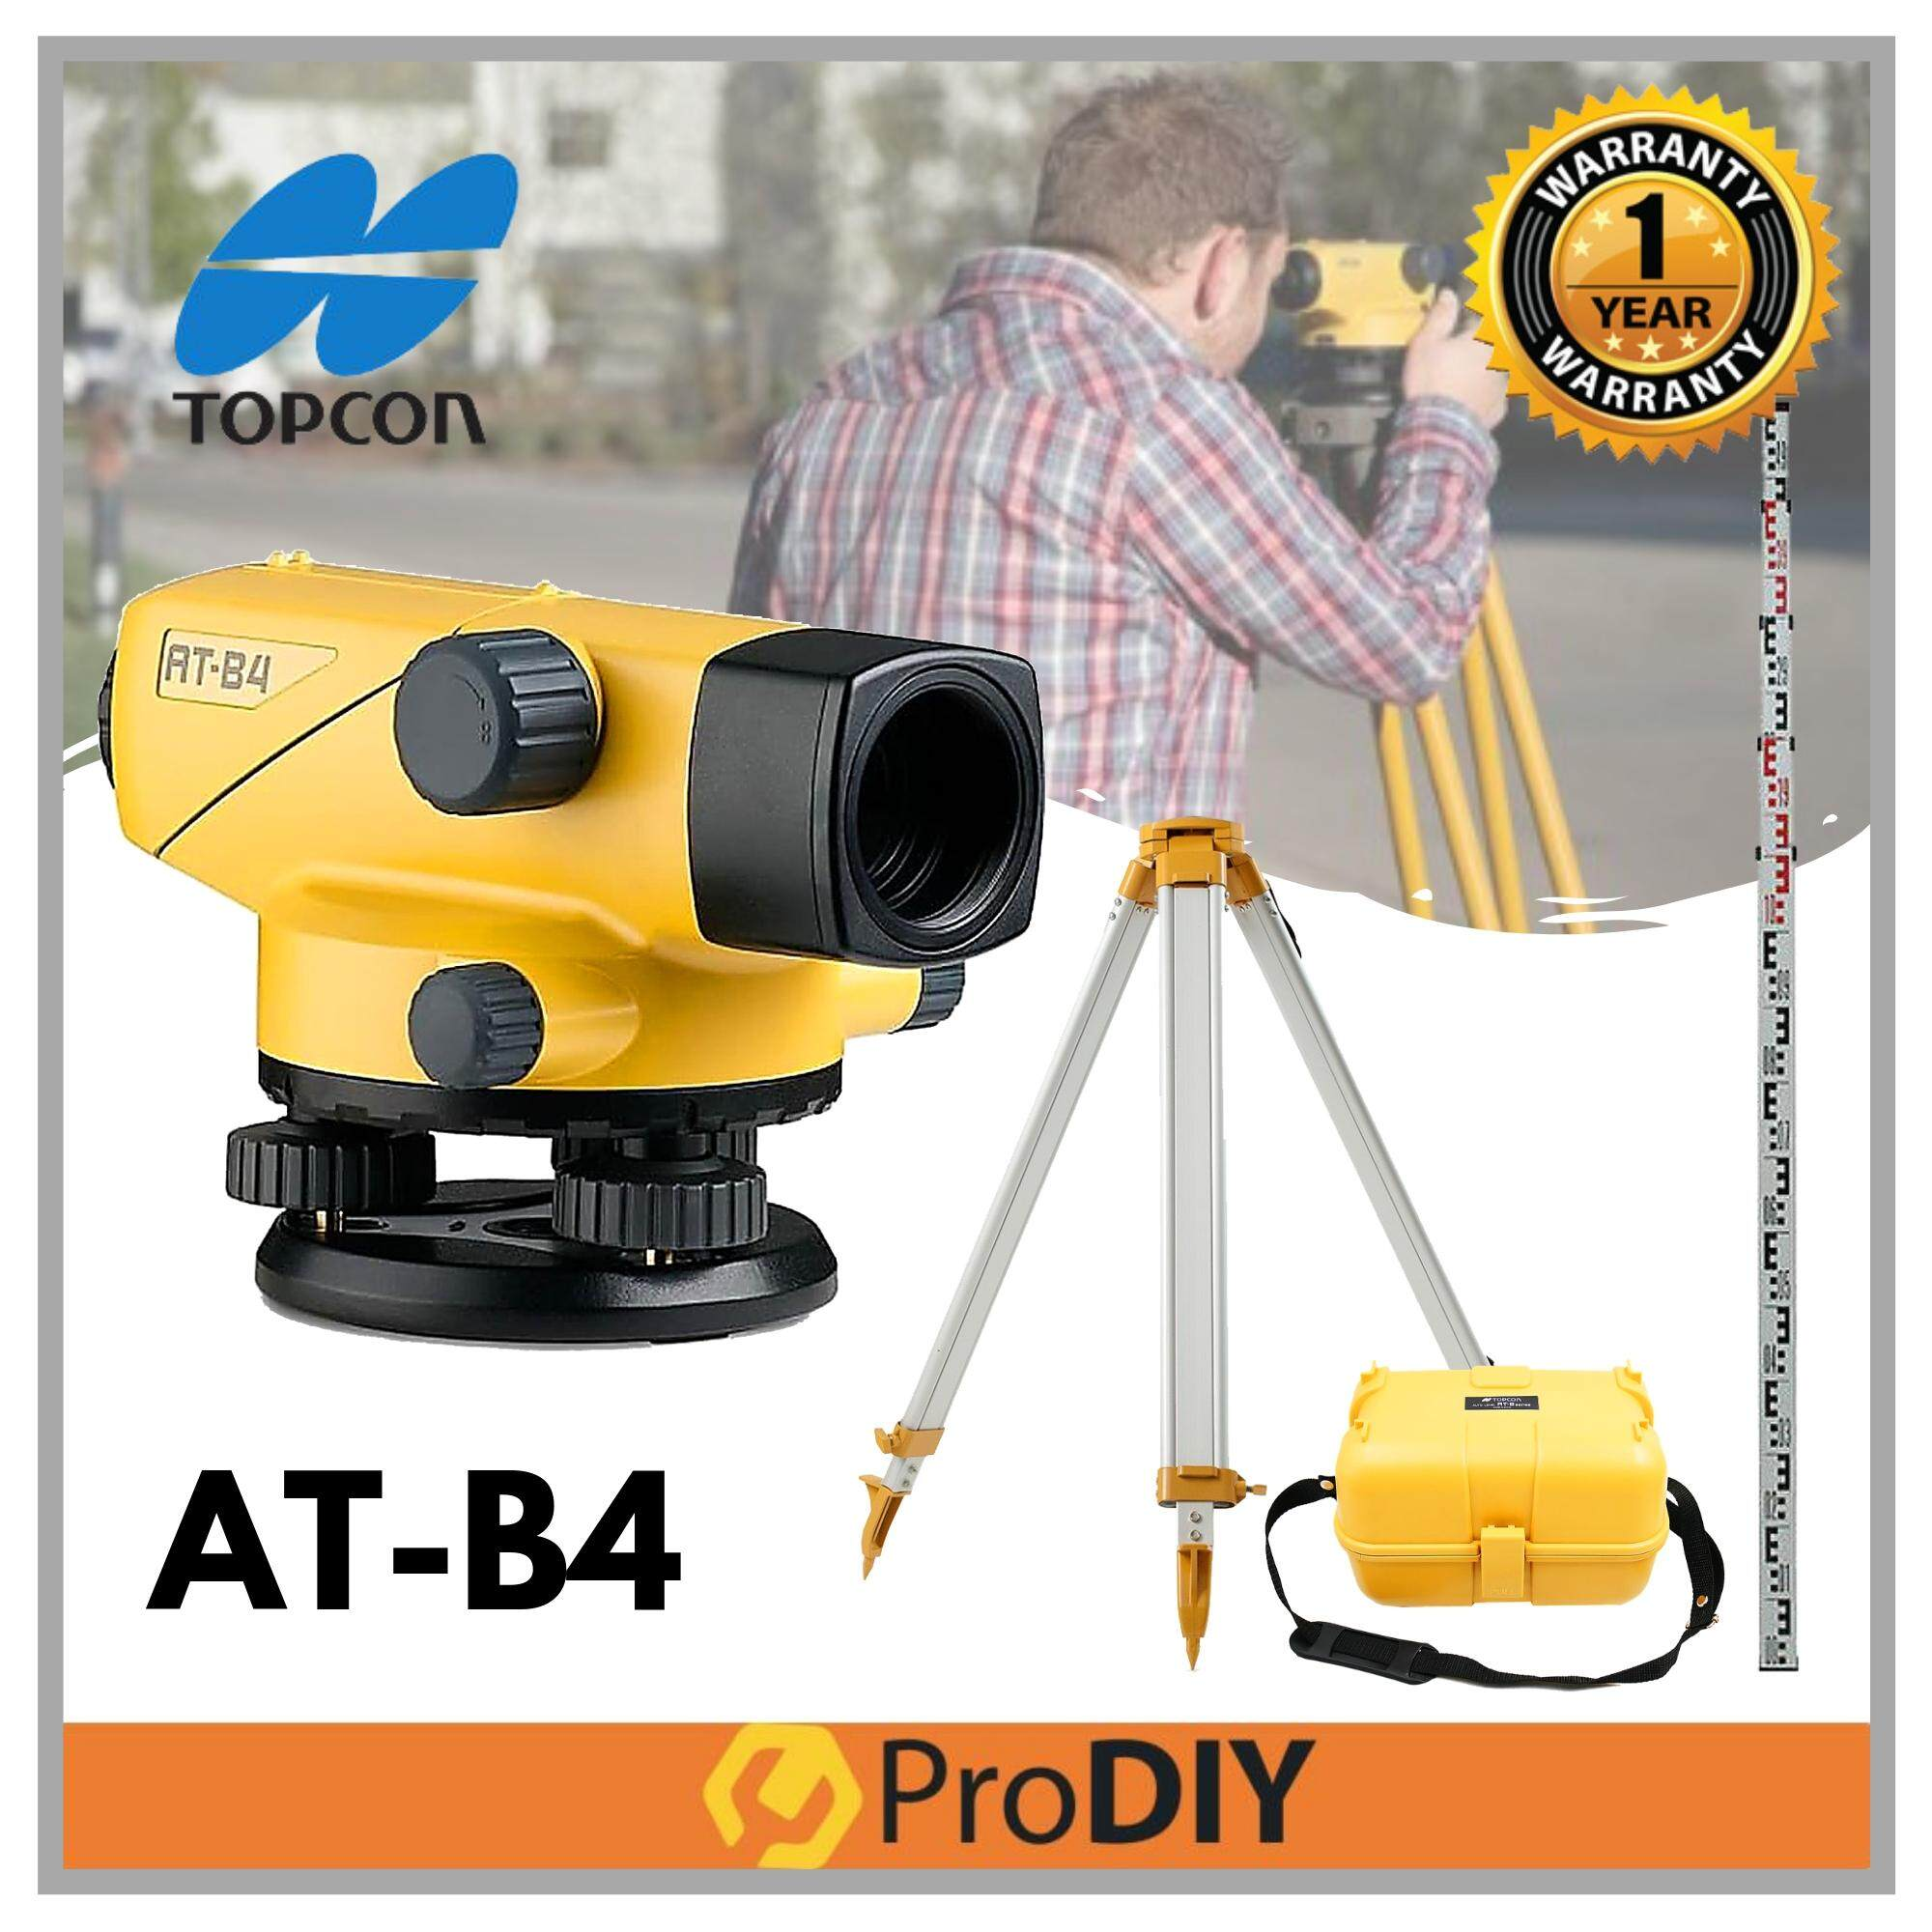 TOPCON AT-B4 Auto Leveling Dumpy With Ruler Staff & Tripod